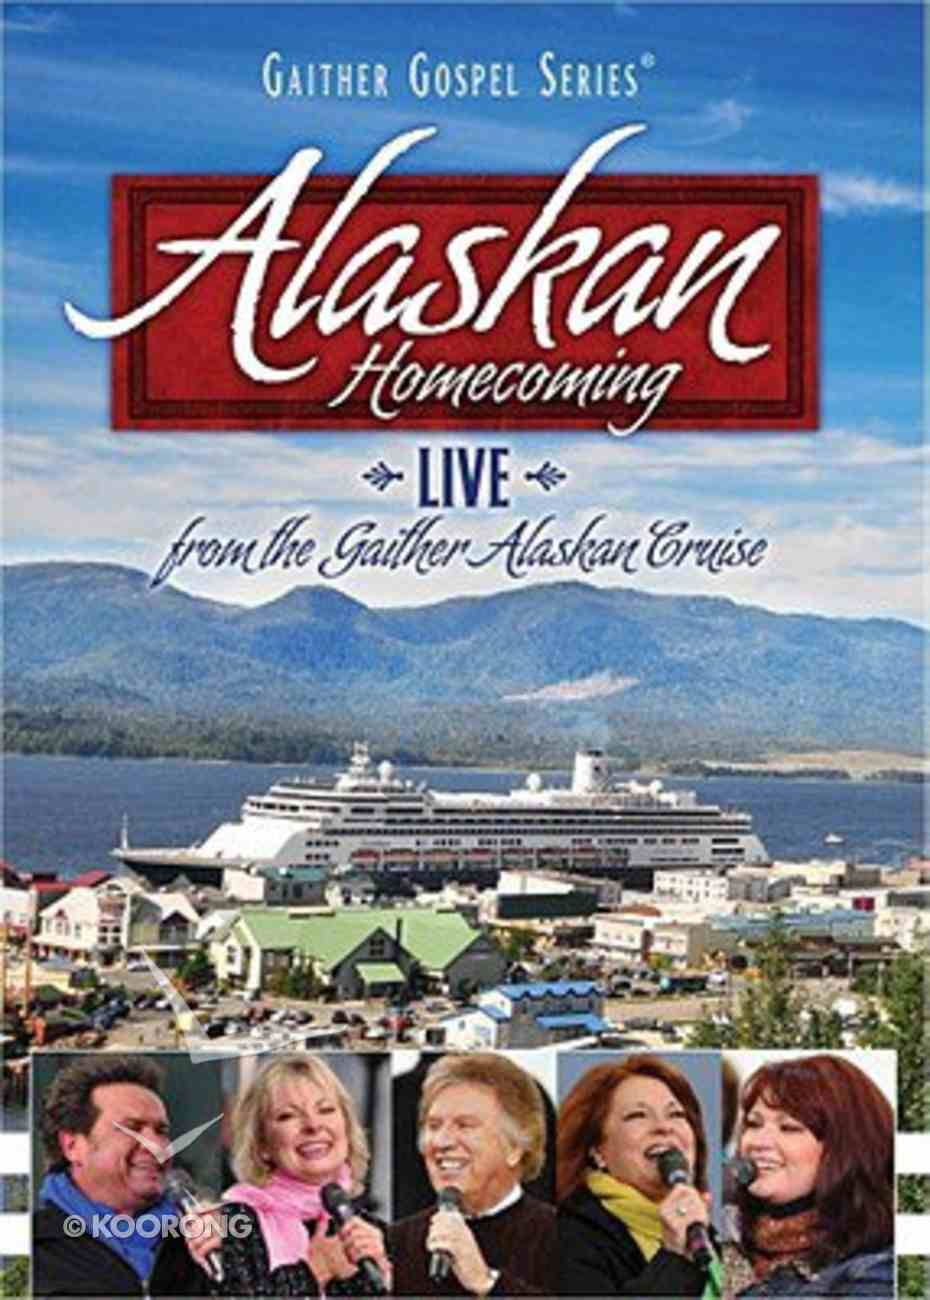 Alaskan Homecoming - Live From the Gaither Alaskan Cruise (Gaither Gospel Series) DVD